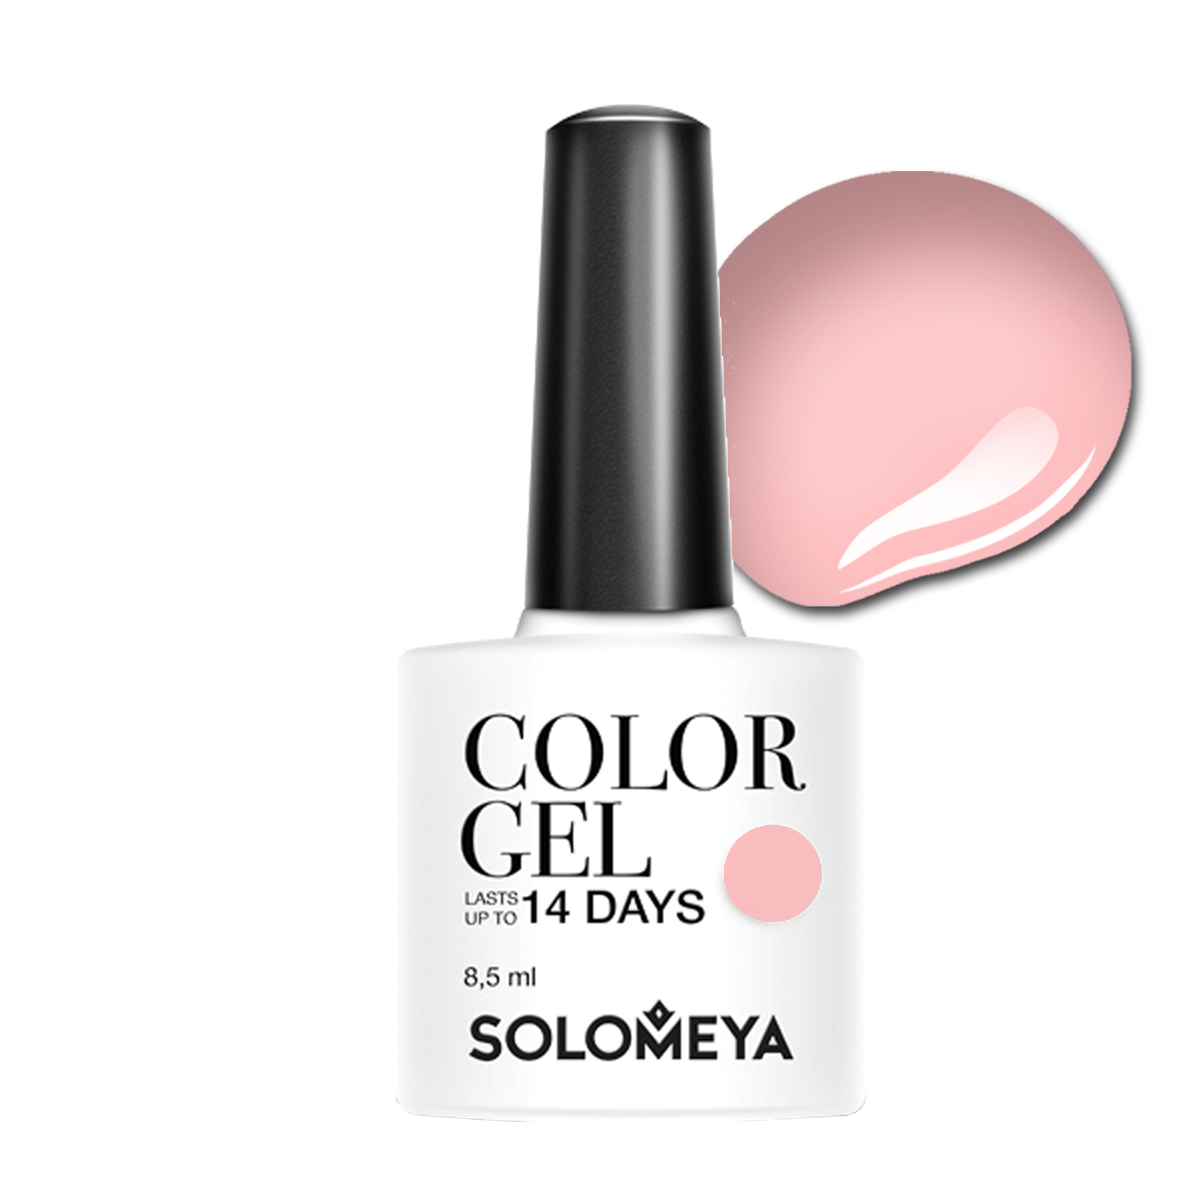 SOLOMEYA Гель-лак для ногтей SCG020 Чайная роза / Color Gel Tea Rose 8,5 мл утюг philips gc3801 60